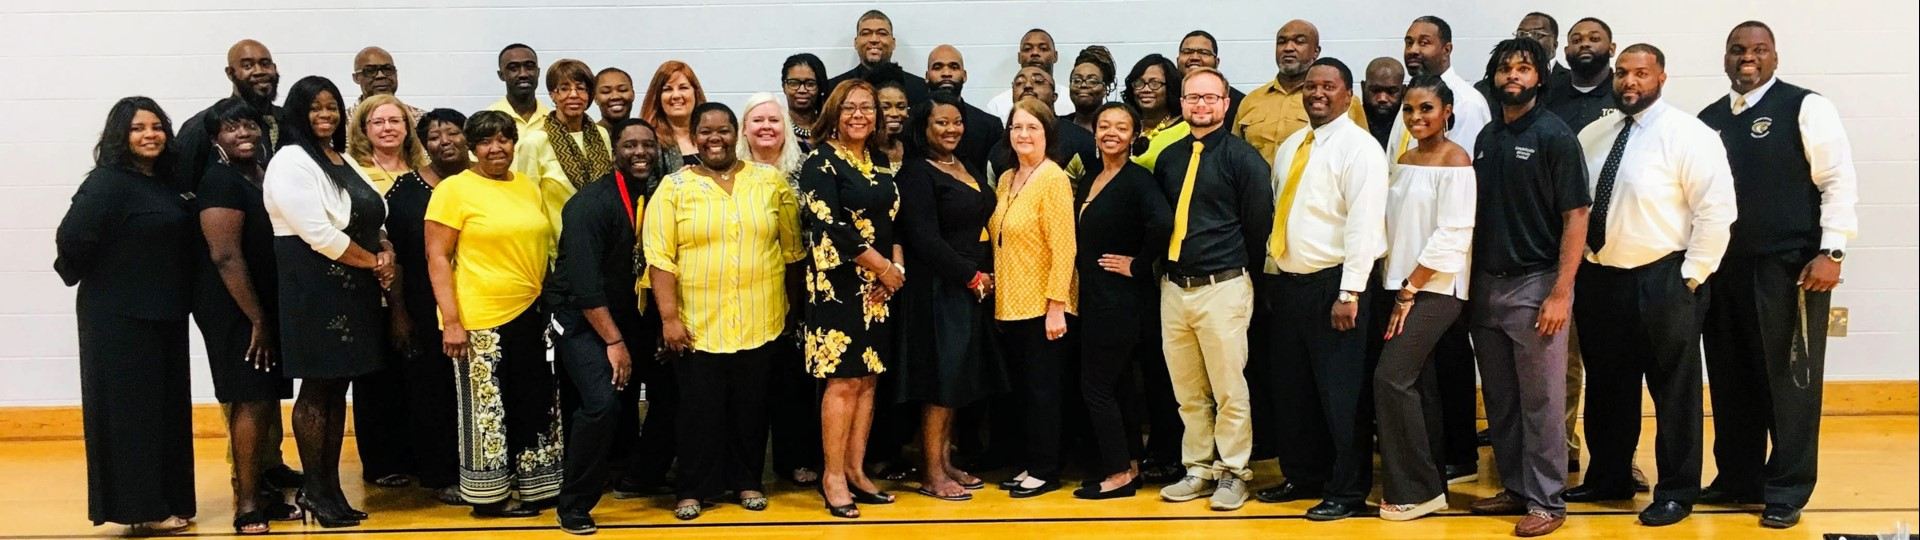 Twiggs County Middle High School Staff 2019-20